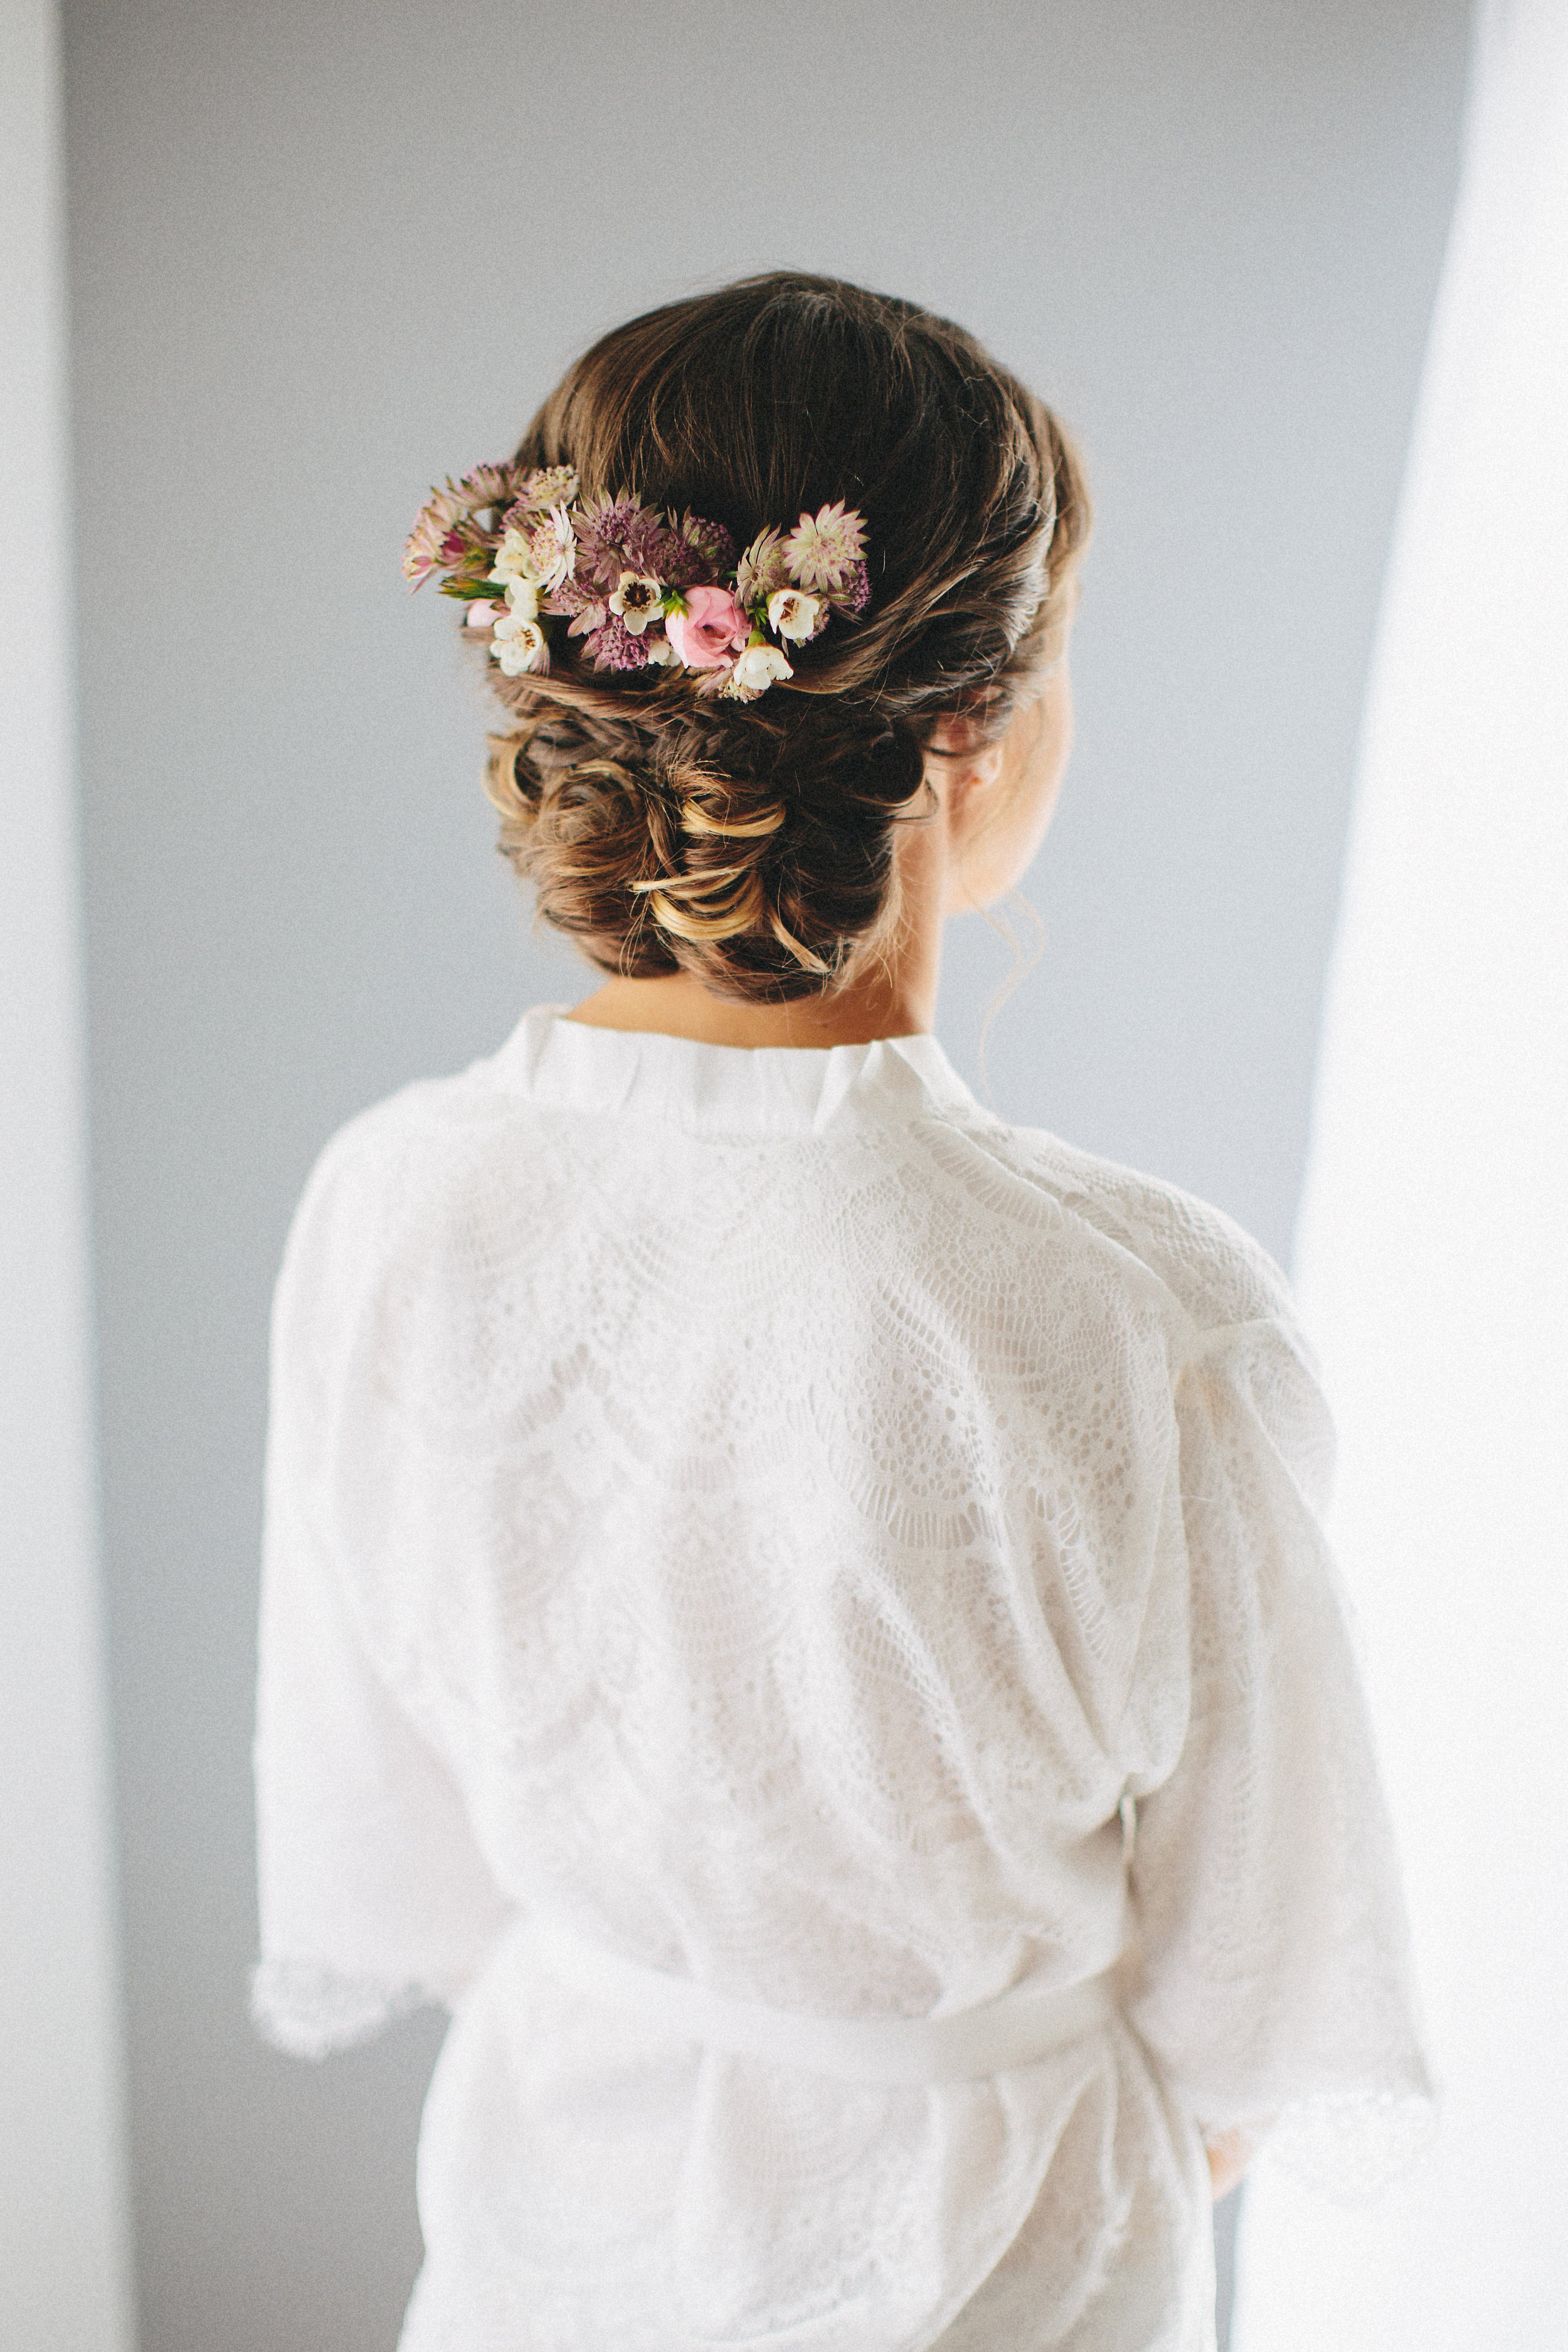 Wedding Updo from Behind with Flowers and Bride Wearing Robe. Bridal hair and makeup by Vanity Belle in Orange County (Costa Mesa) and San Diego (La Jolla)